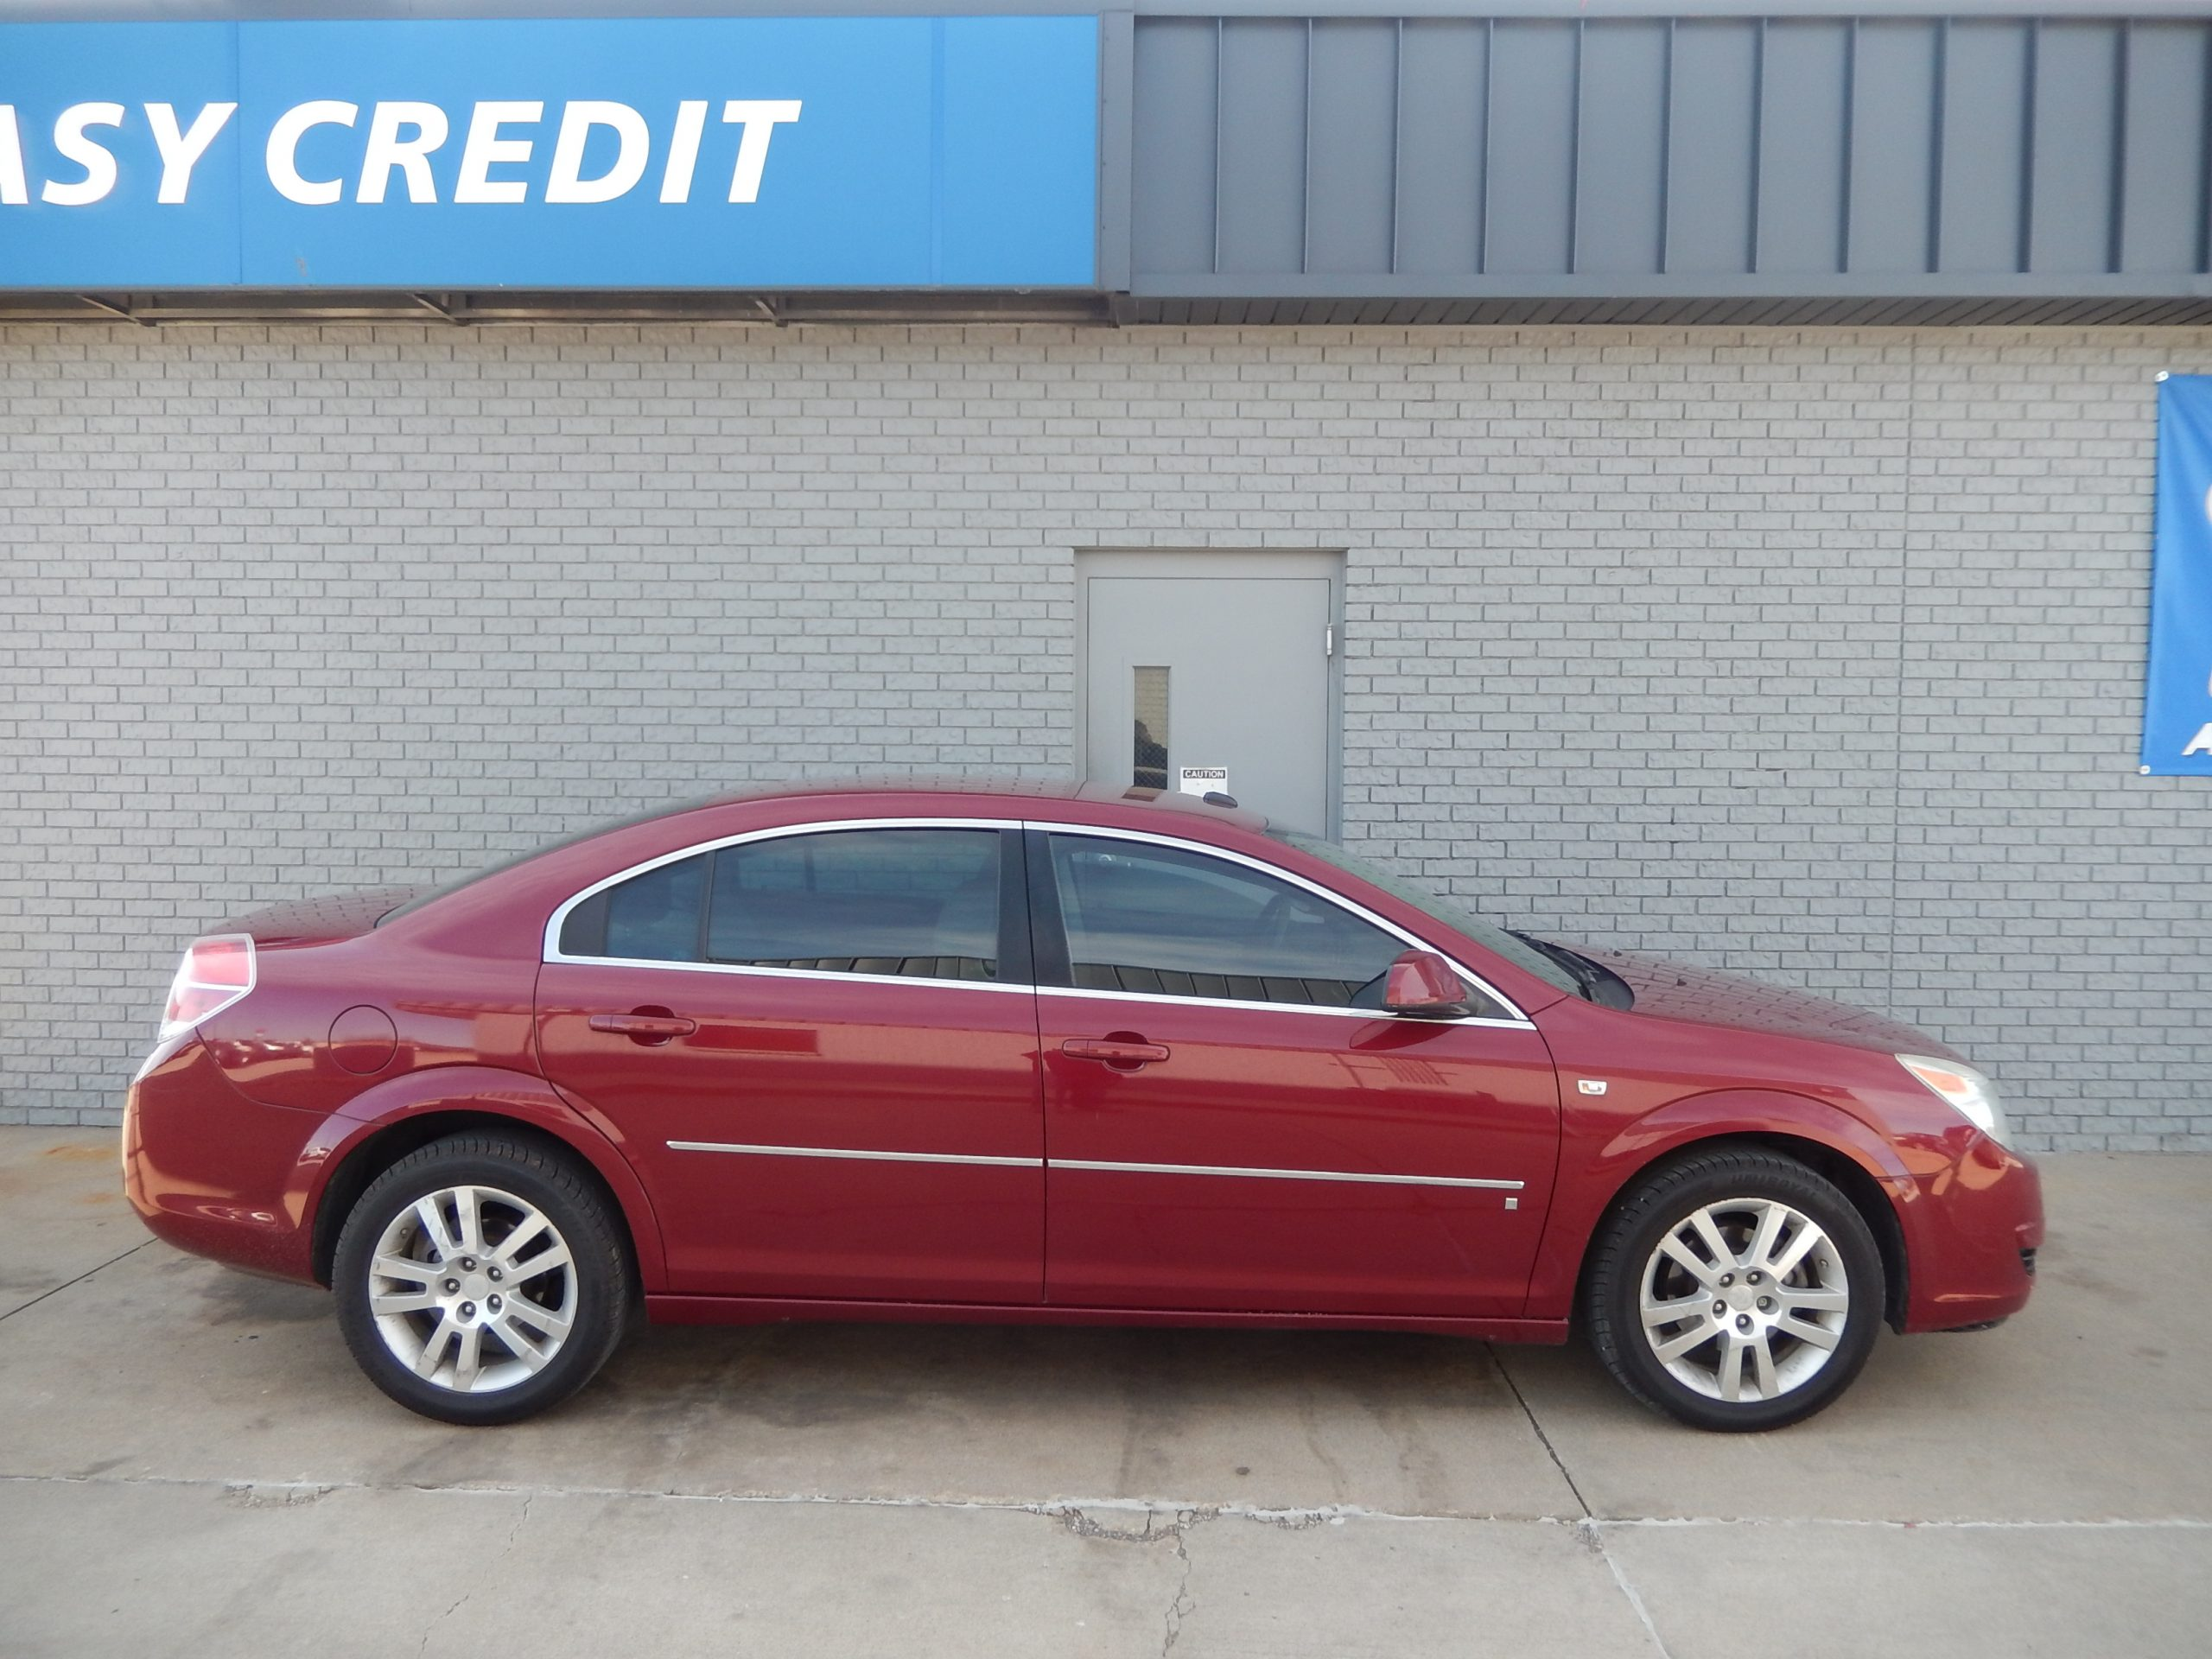 Used 2007 Saturn Aura XE